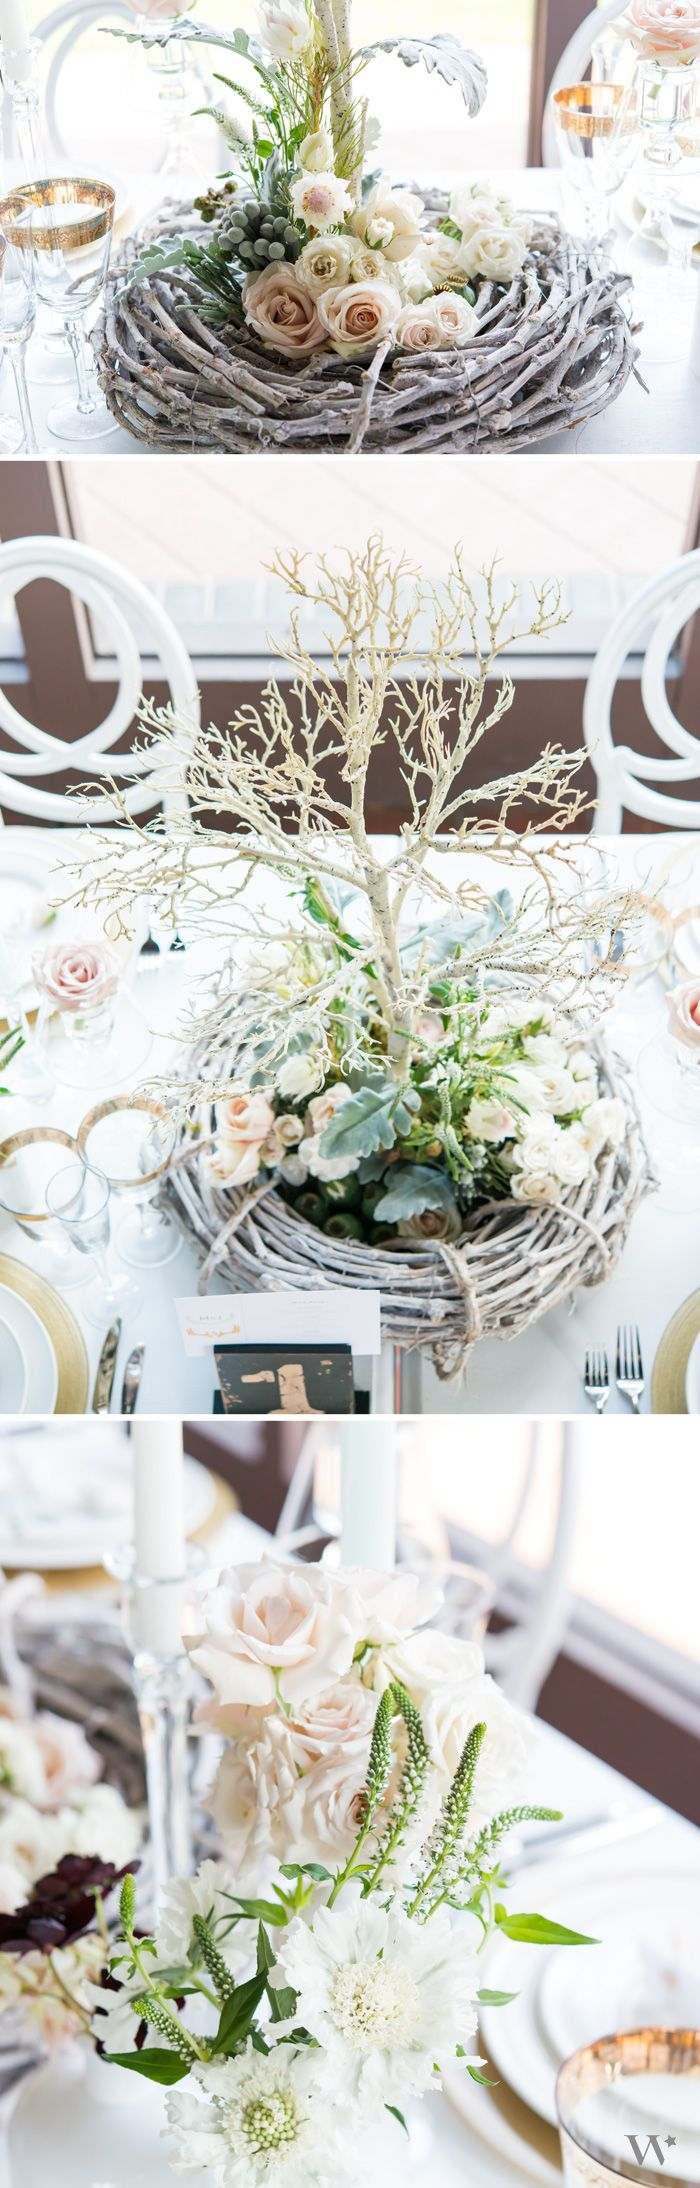 91 best Rustic Woodland Wedding Inspiration images on Pinterest ...